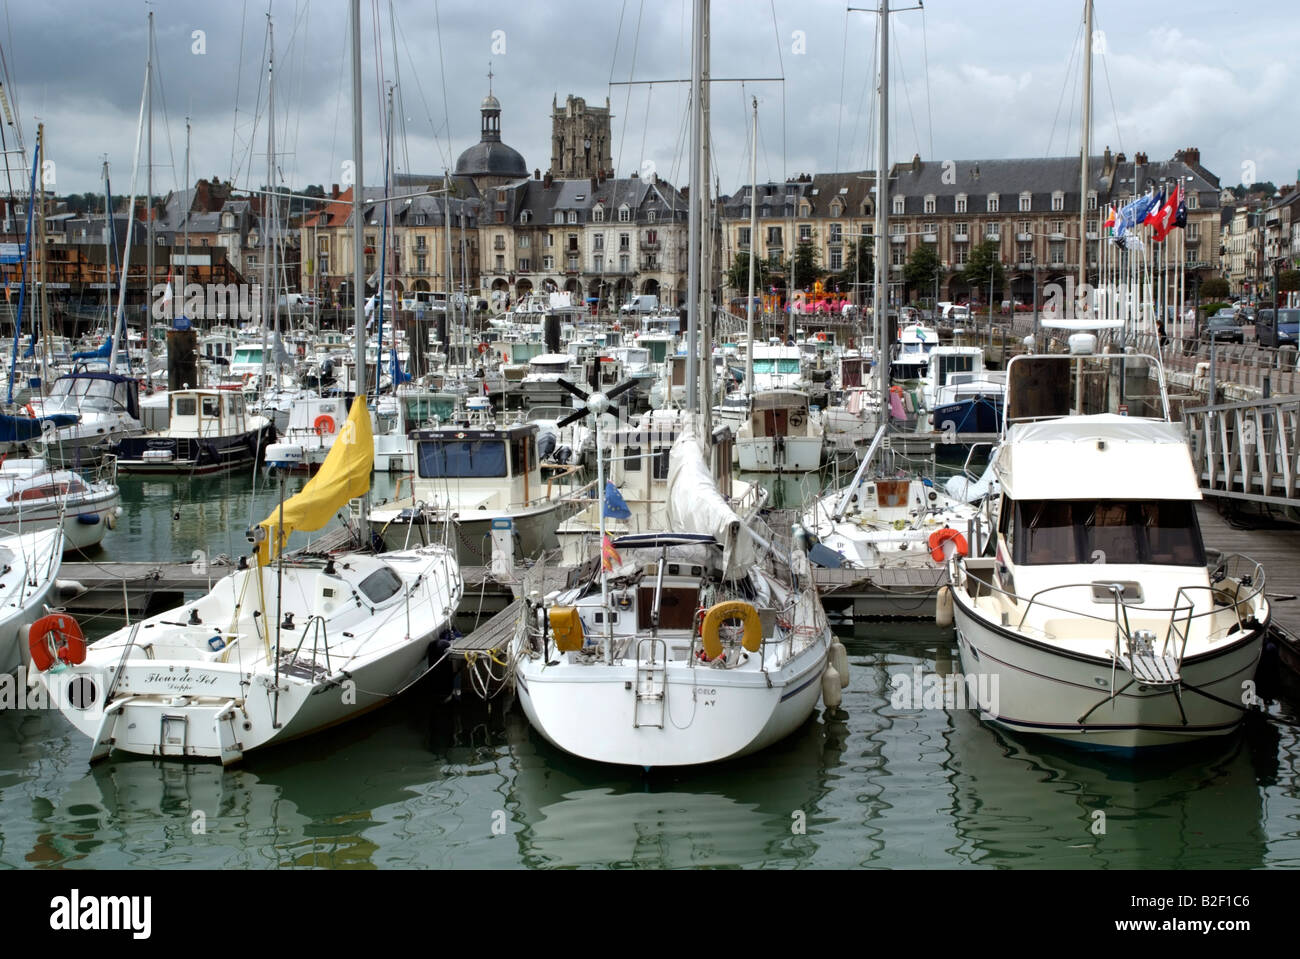 Yachts and boating marina in Dieppe northern France Europe - Stock Image